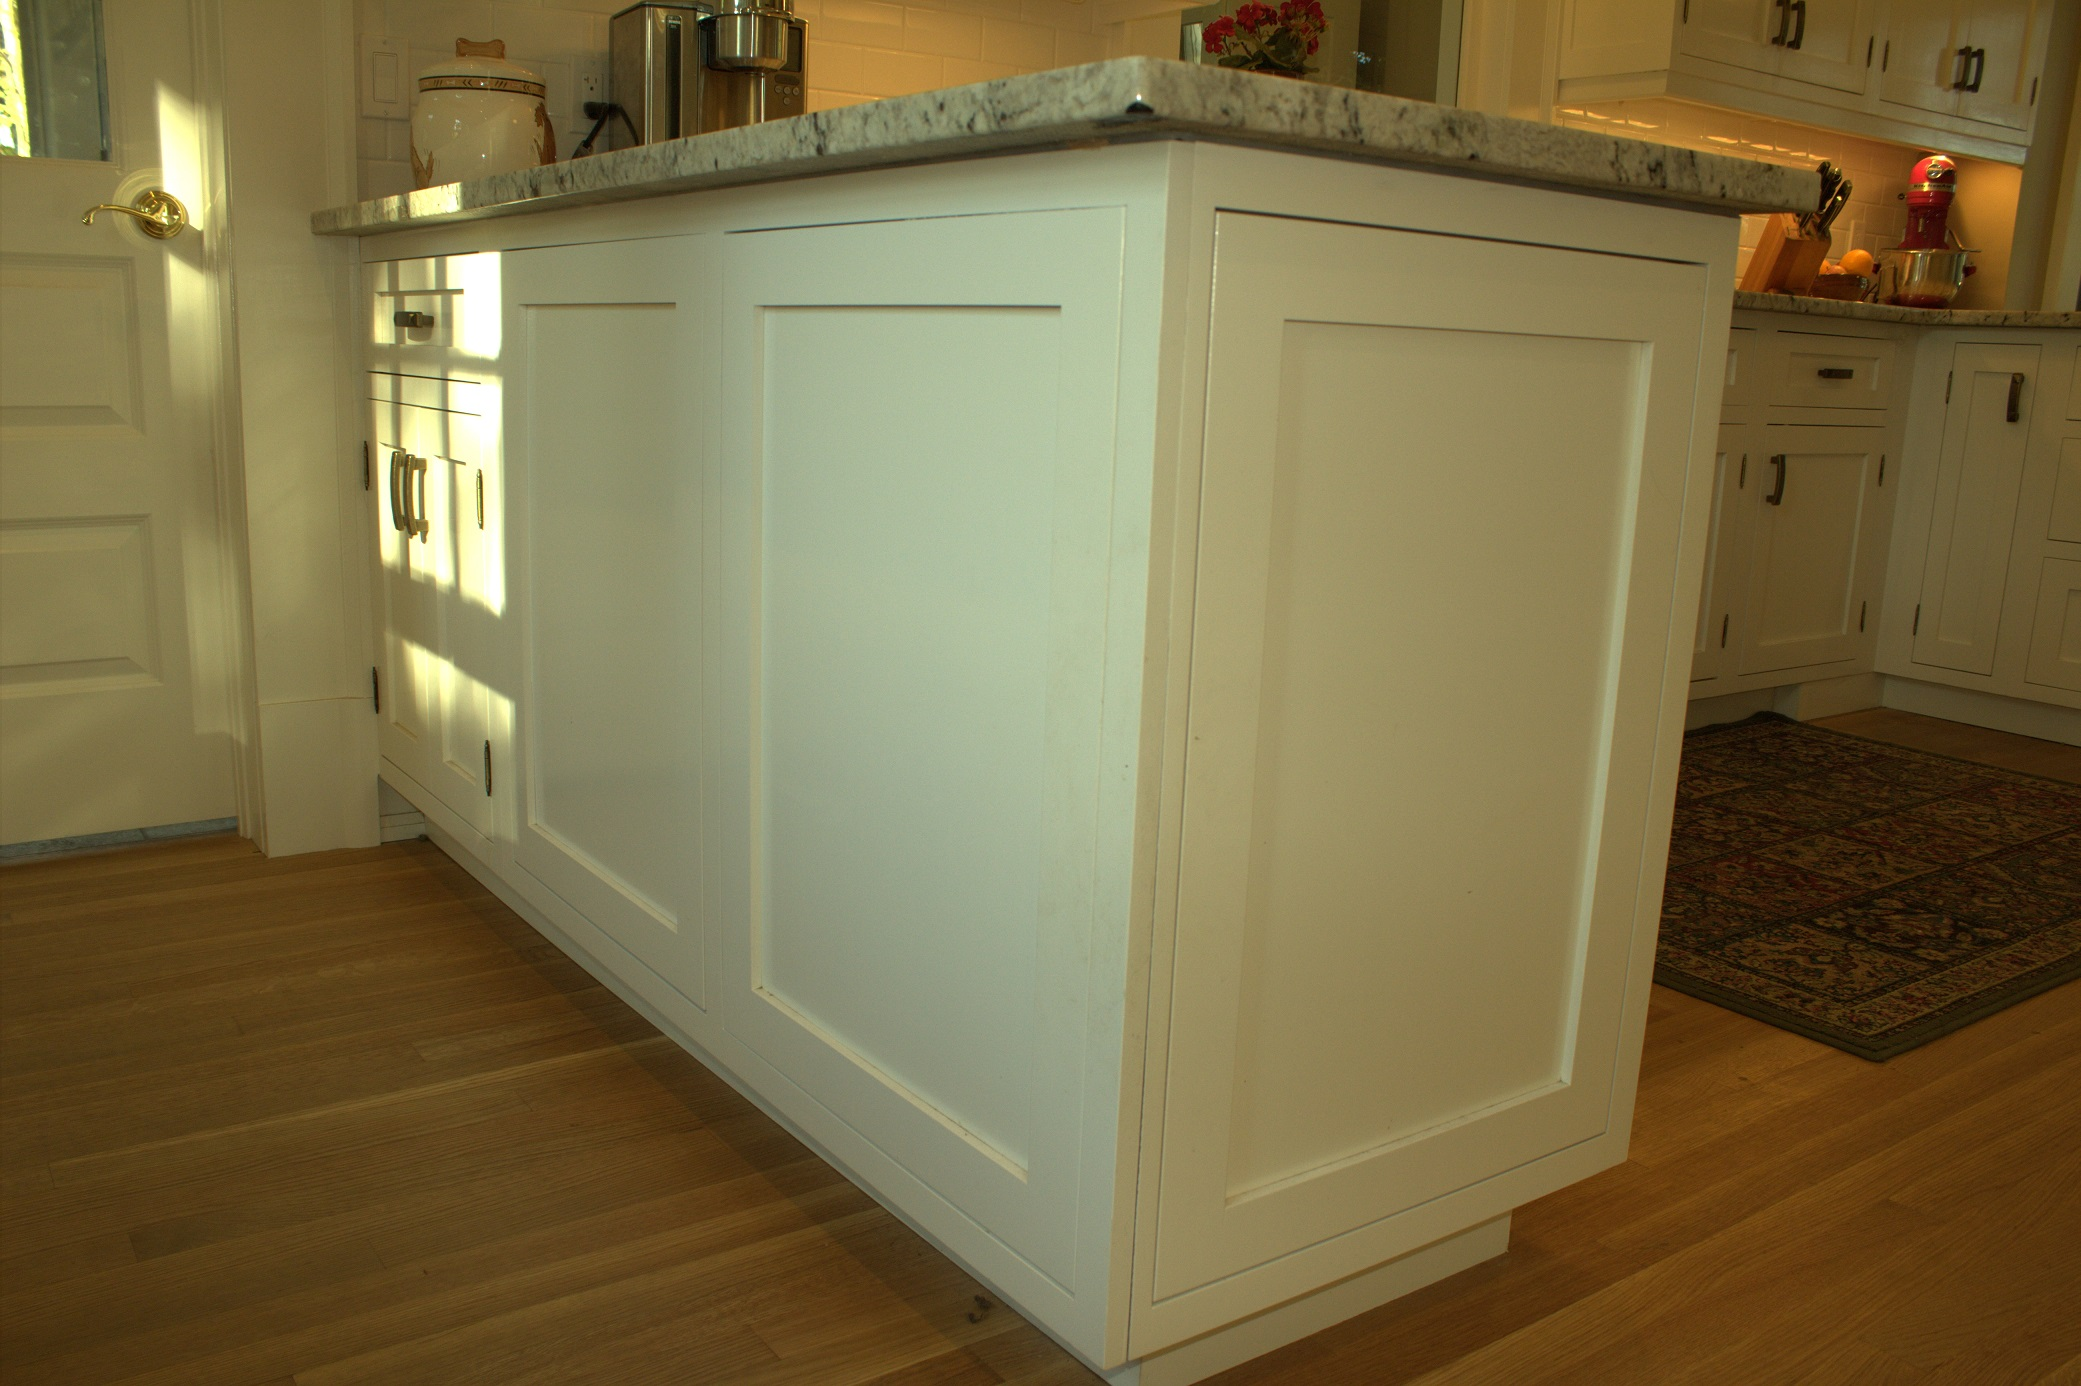 Pictures Of Refaced Kitchen Cabinets Beautiful White Shaker | Over 25 Years Of Custom Cabinets